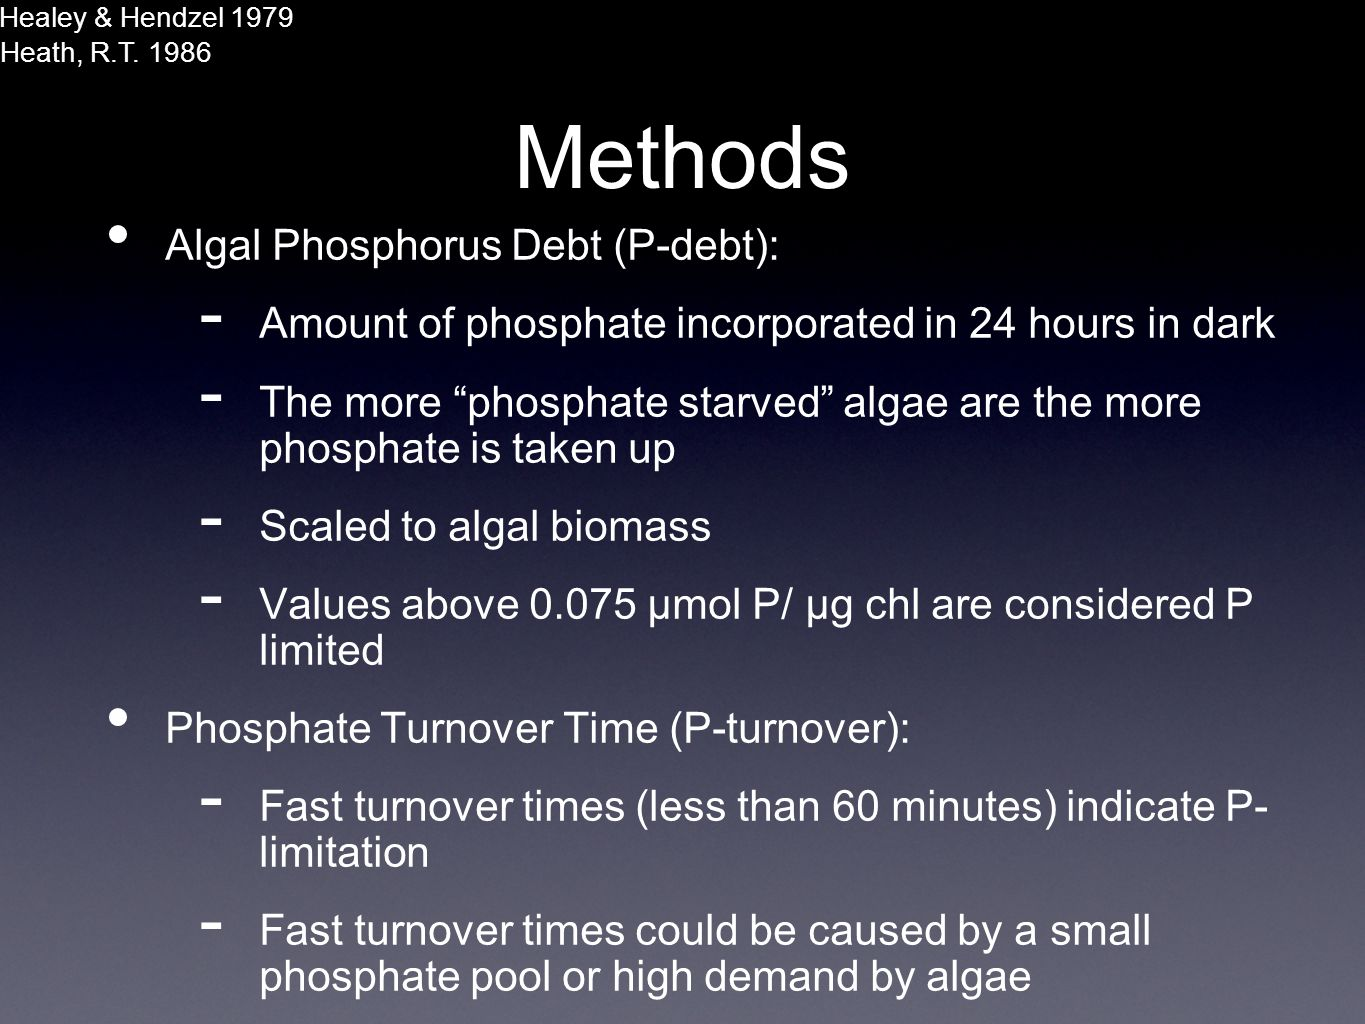 Methods Algal Phosphorus Debt (P-debt): - Amount of phosphate incorporated in 24 hours in dark - The more phosphate starved algae are the more phosphate is taken up - Scaled to algal biomass - Values above 0.075 µmol P/ µg chl are considered P limited Phosphate Turnover Time (P-turnover): - Fast turnover times (less than 60 minutes) indicate P- limitation - Fast turnover times could be caused by a small phosphate pool or high demand by algae Healey & Hendzel 1979 Heath, R.T.